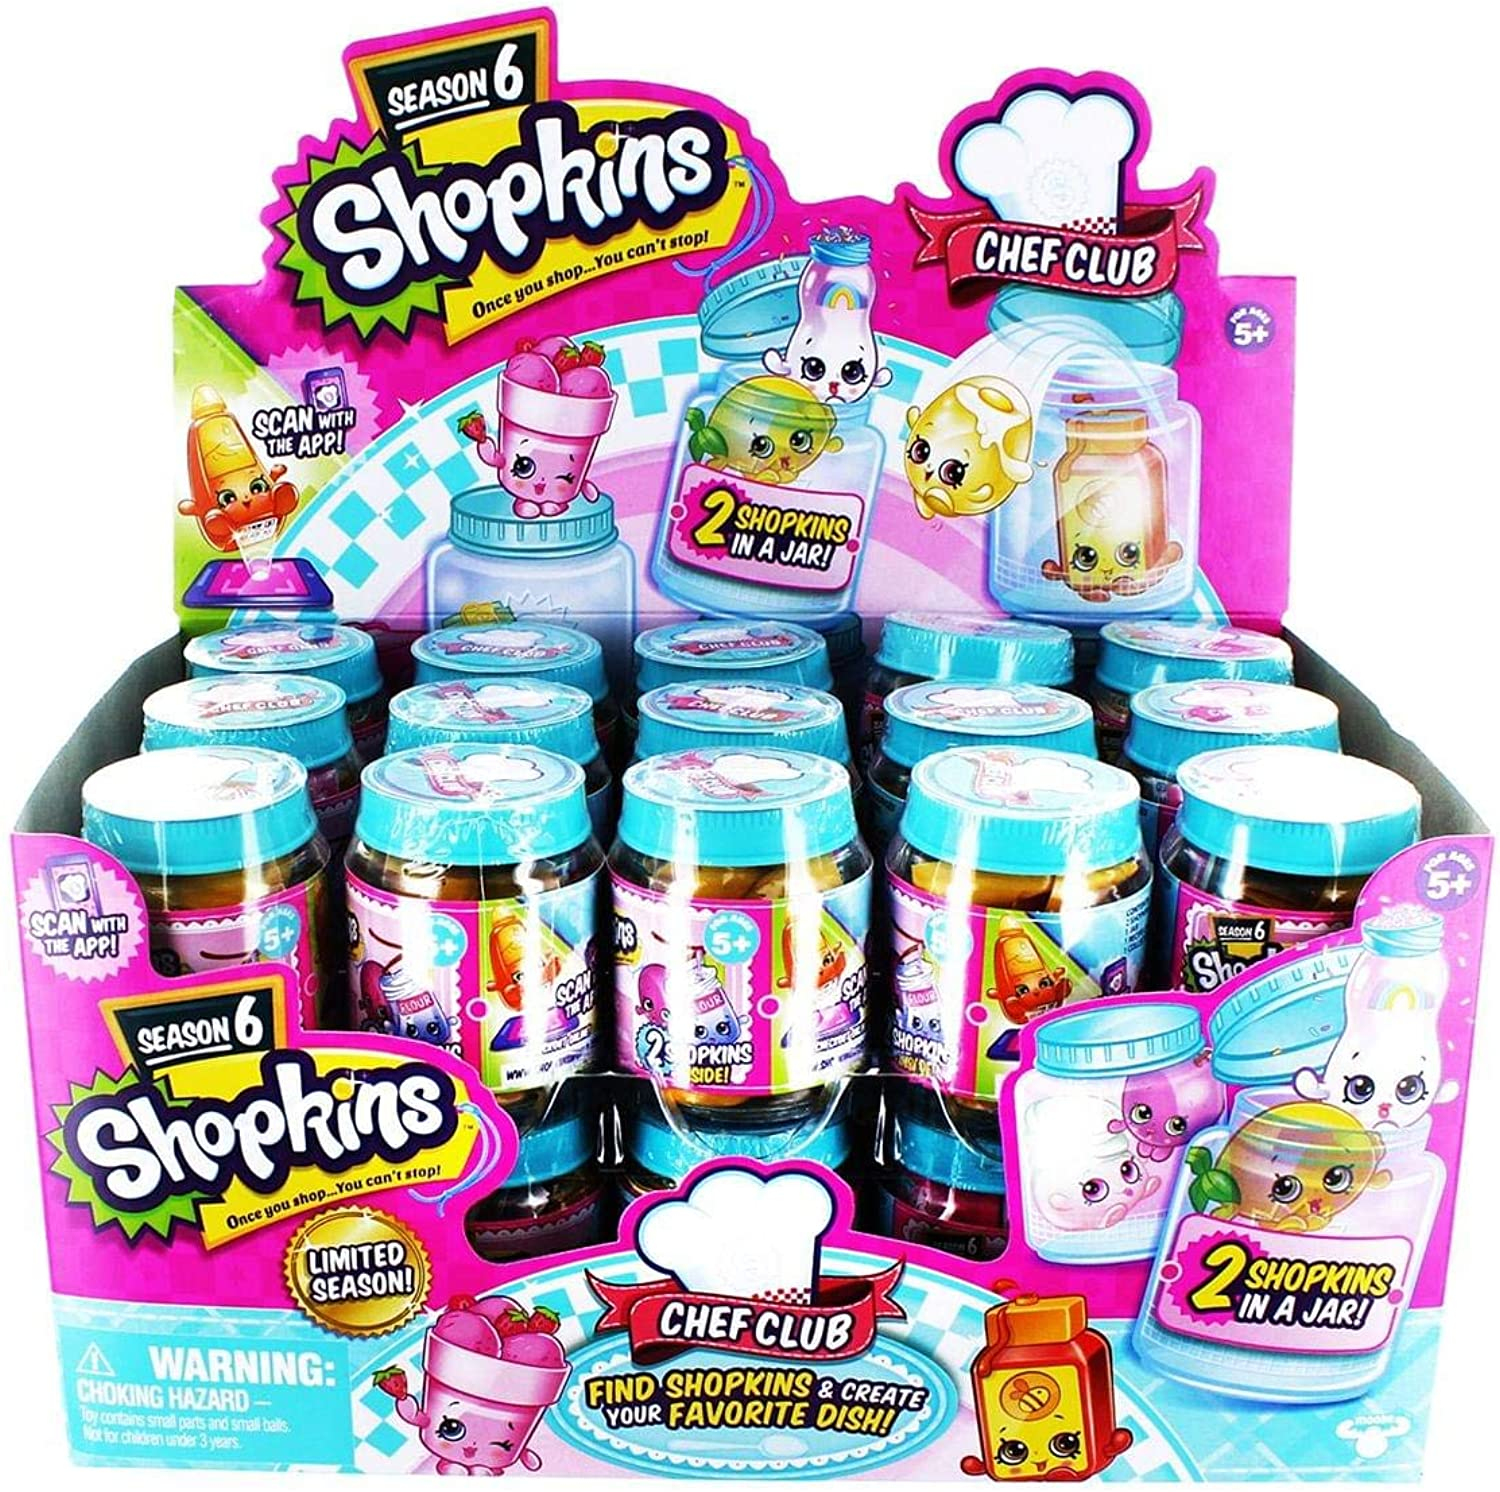 Shopkins Season 6 Chef Club 2 Pack Sealed Case of 30